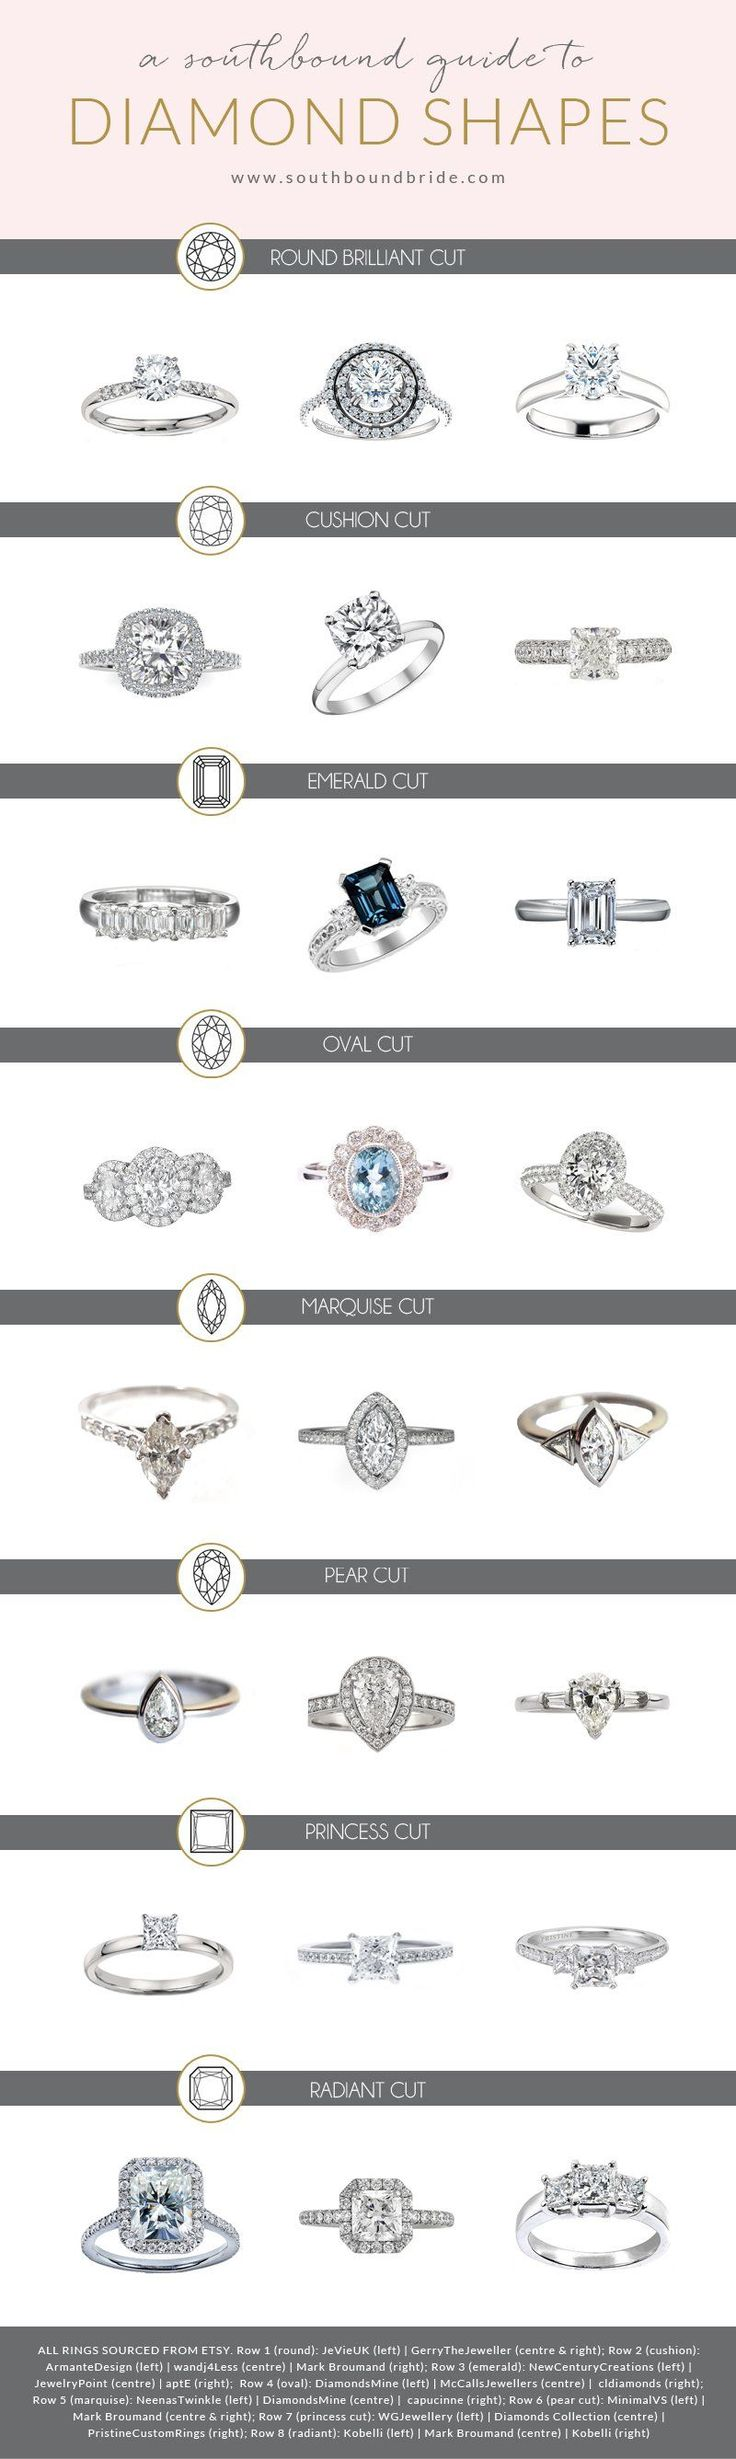 Engagement Rings Guide: Diamond Cuts | SouthBound Bride ♡cushion, oval, and radiant♡